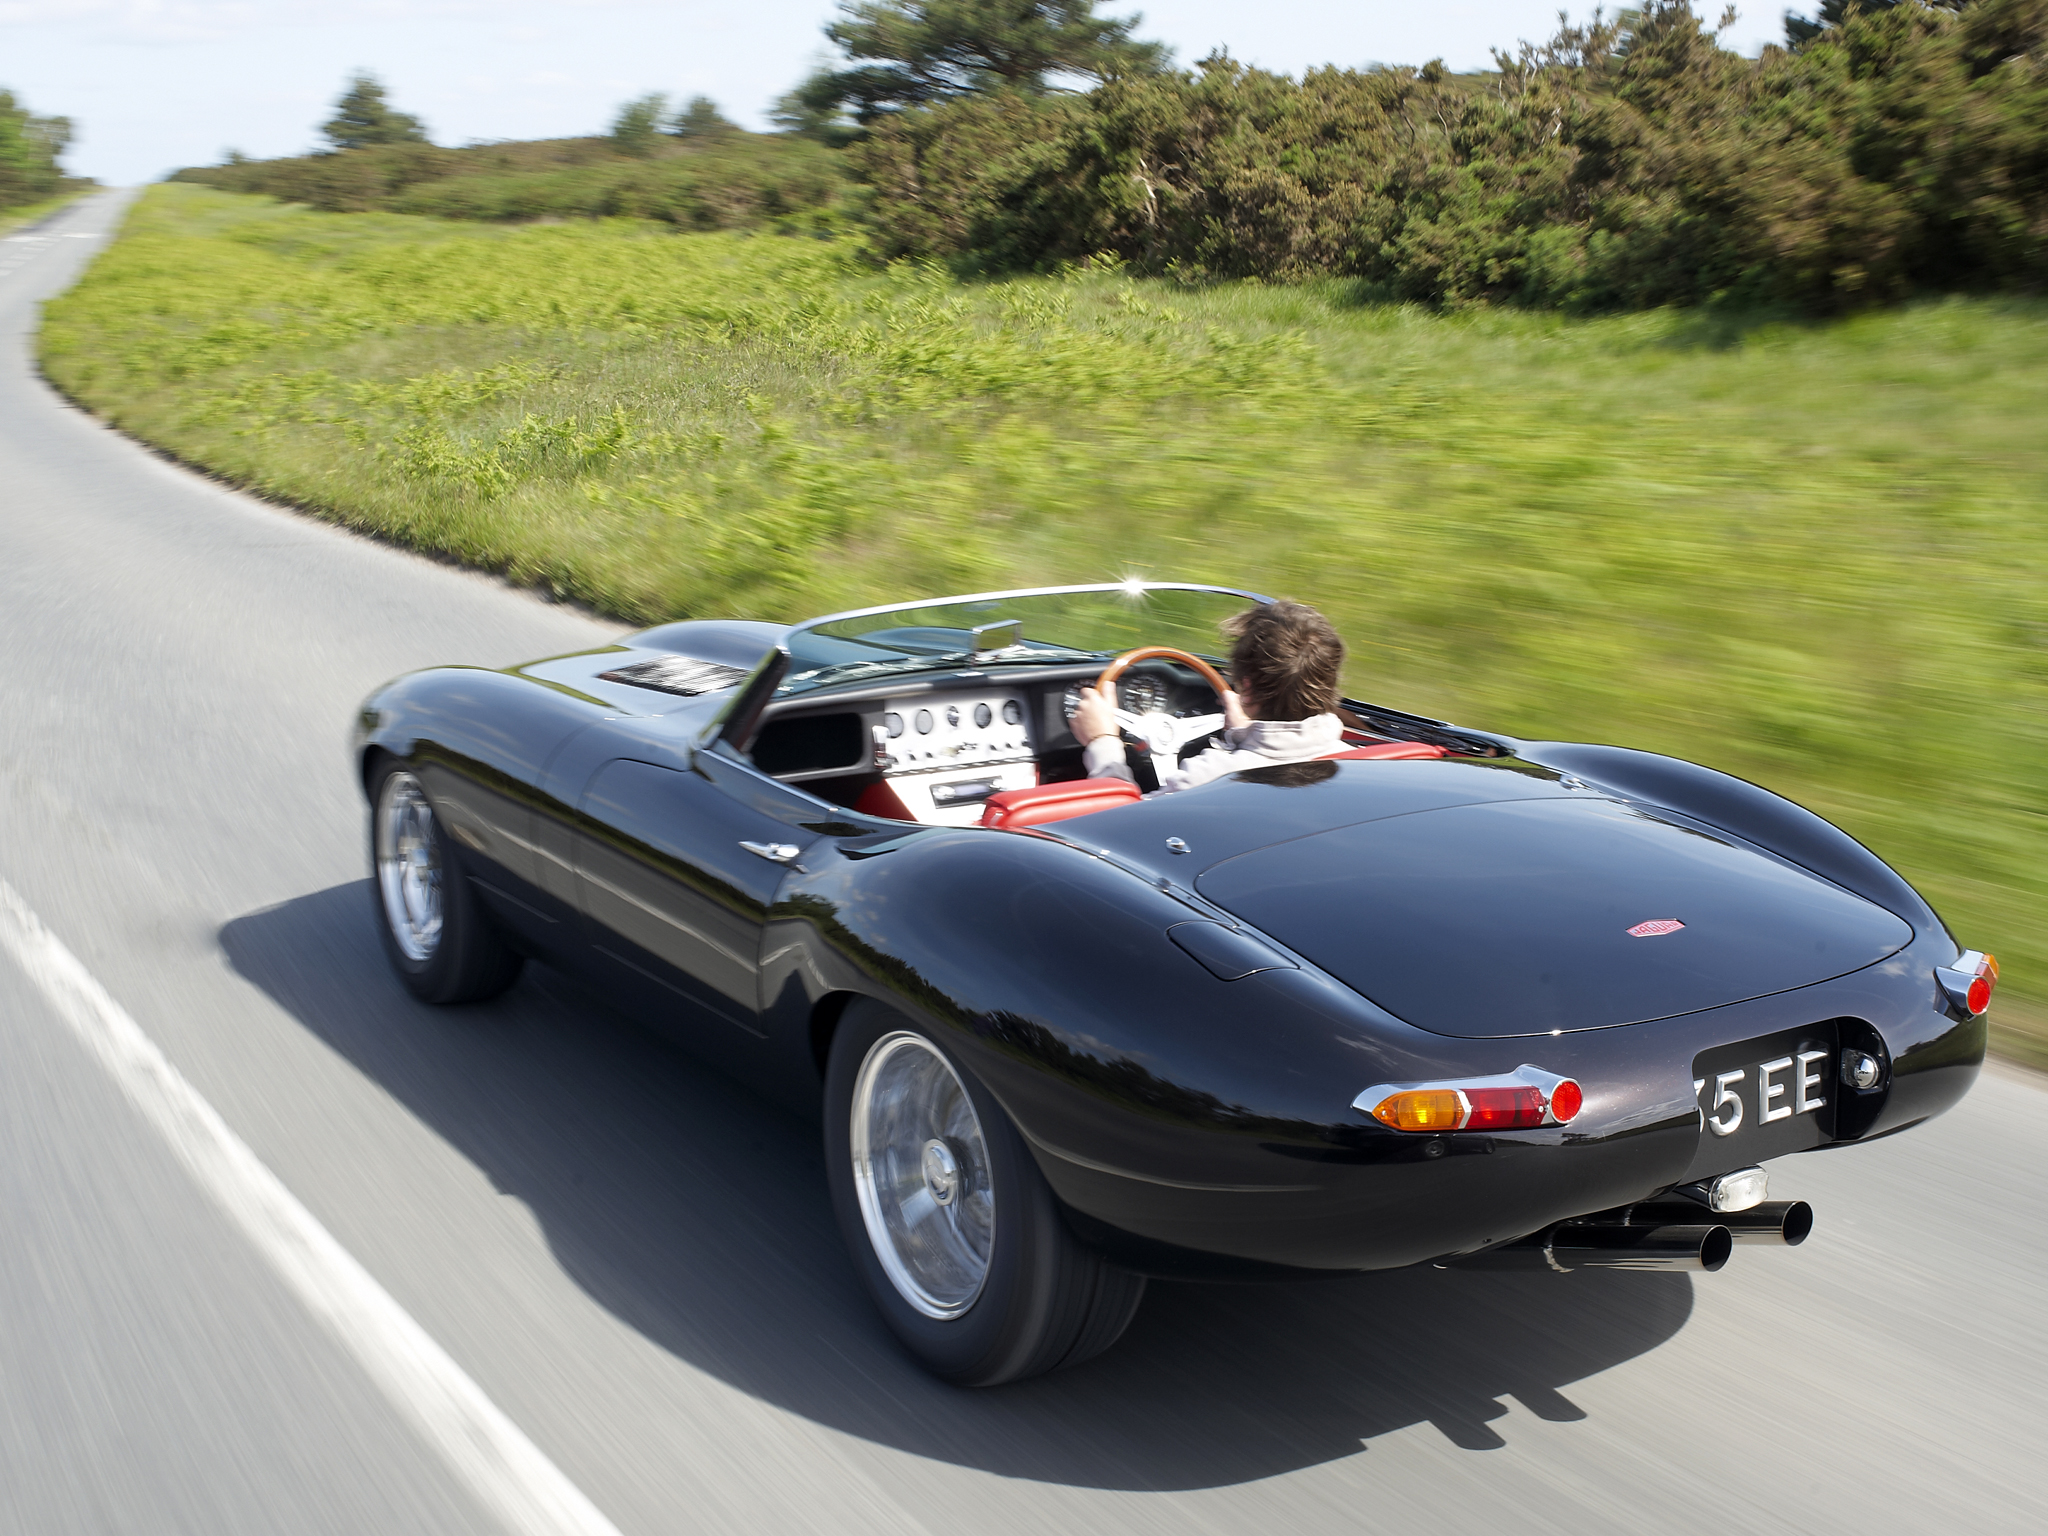 2011 Jaguar Eagle Lightweight Speedster Supercar G